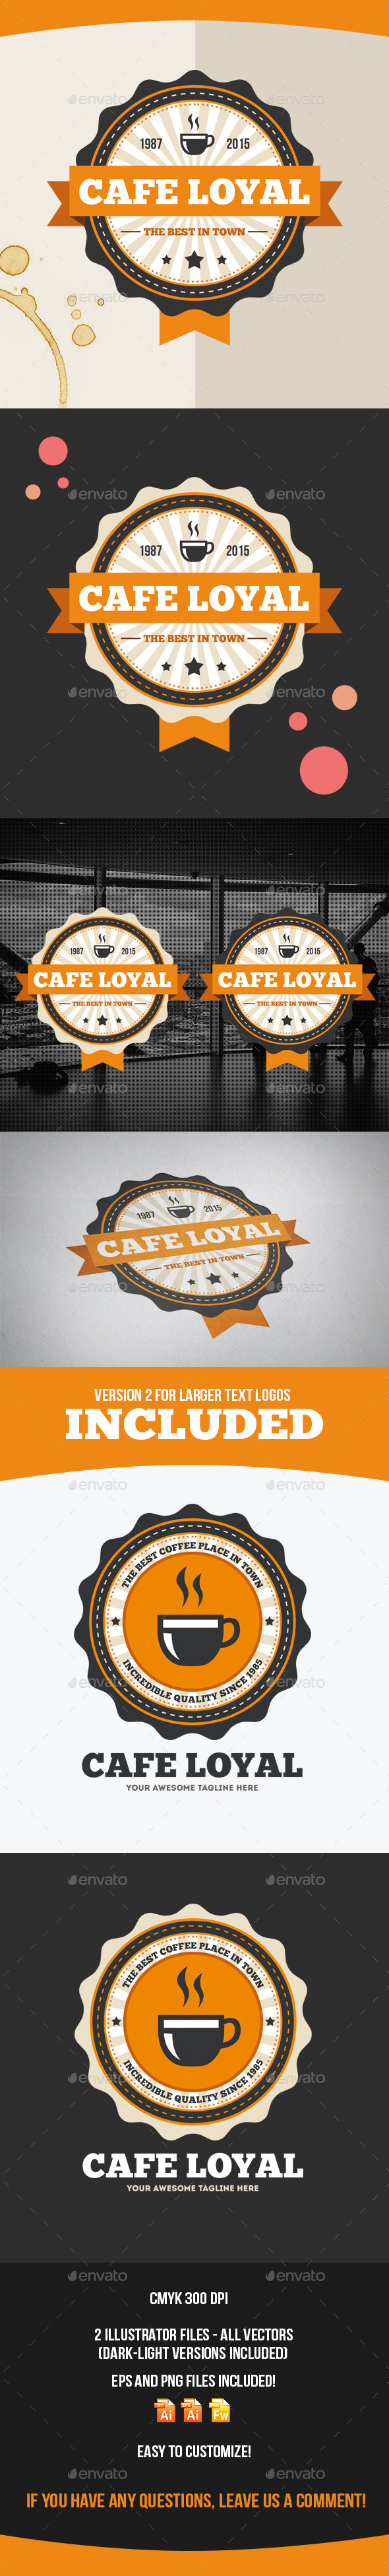 GraphicRiver Cafe Loyal Logo Template 9222659